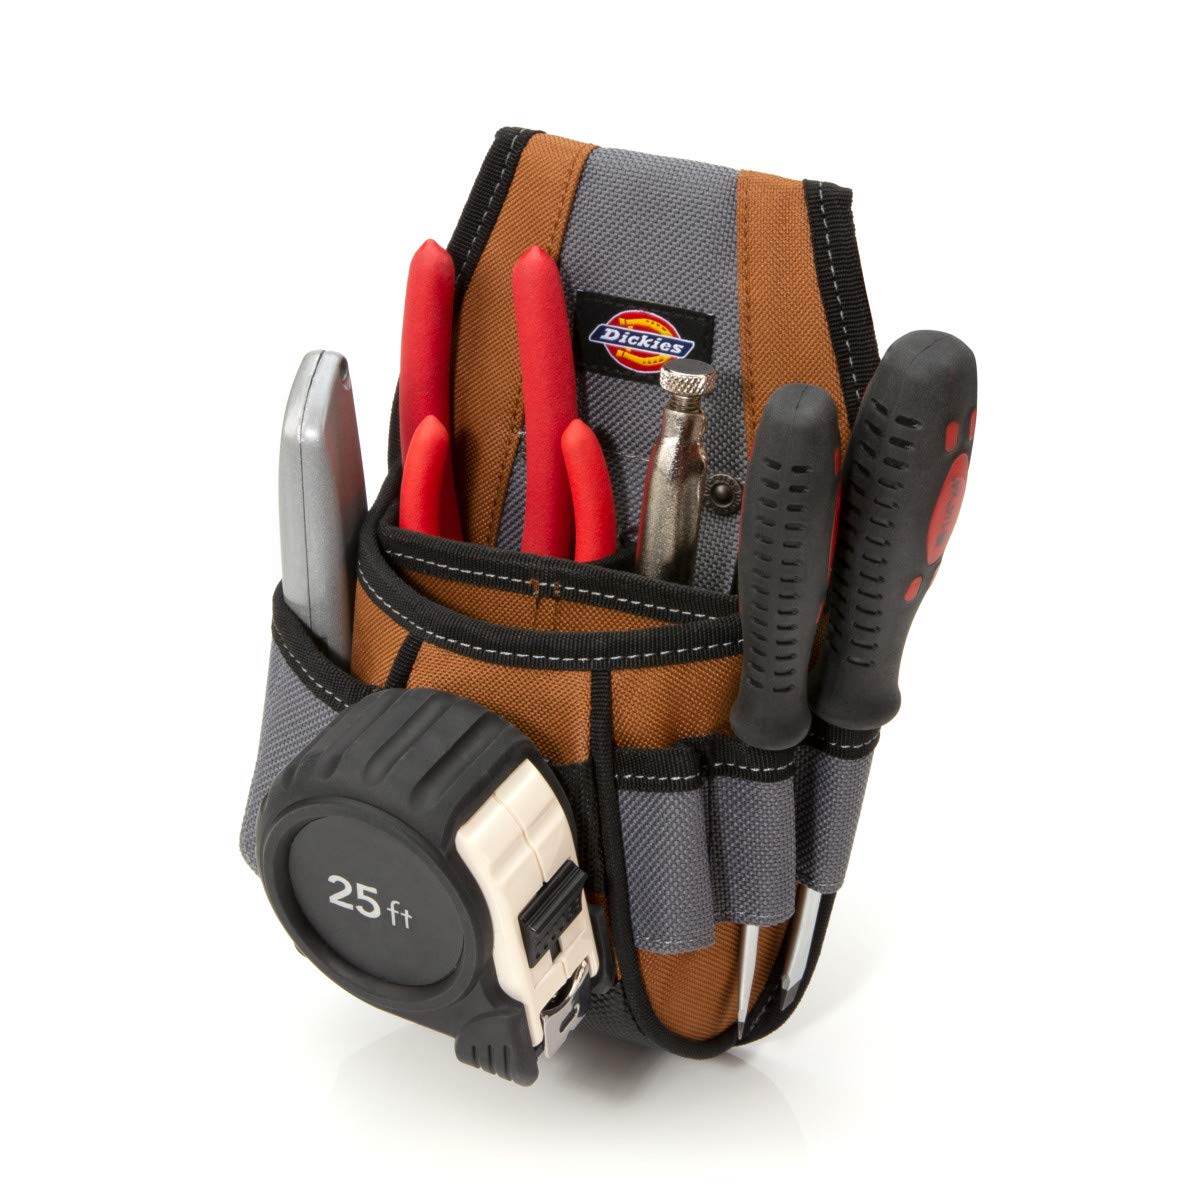 Dickies Work Gear 57099 4-Pocket Rigid Tool Pouch with Tape Clip by Dickies Work Gear (Image #2)